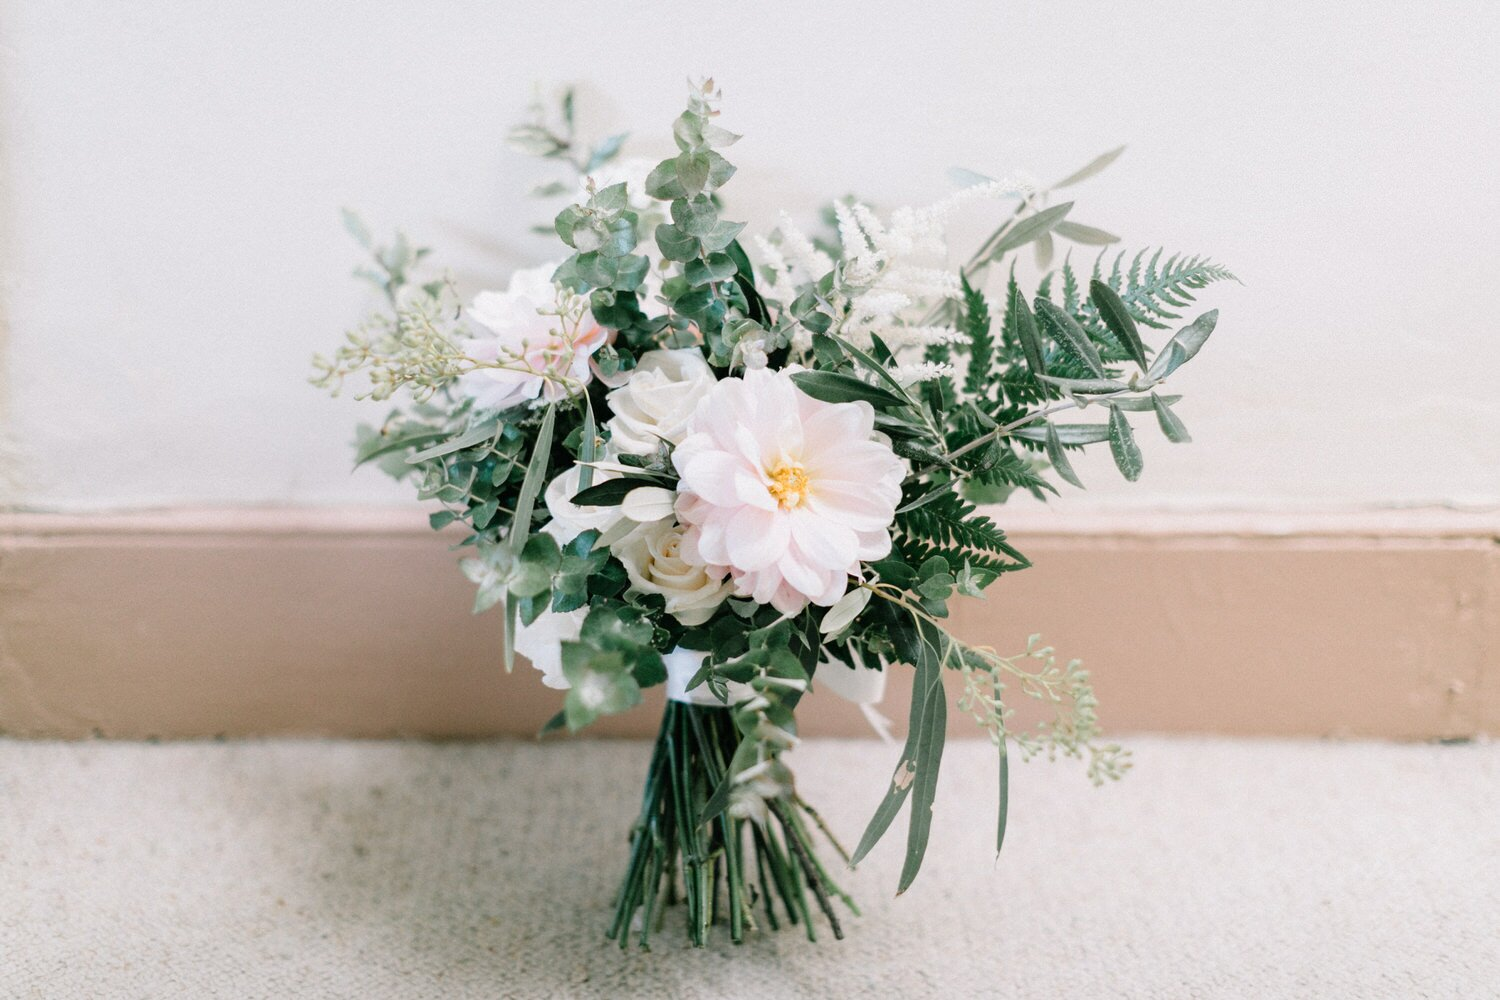 sydney-wedding-flower-packages-price-cheap-affordable-17